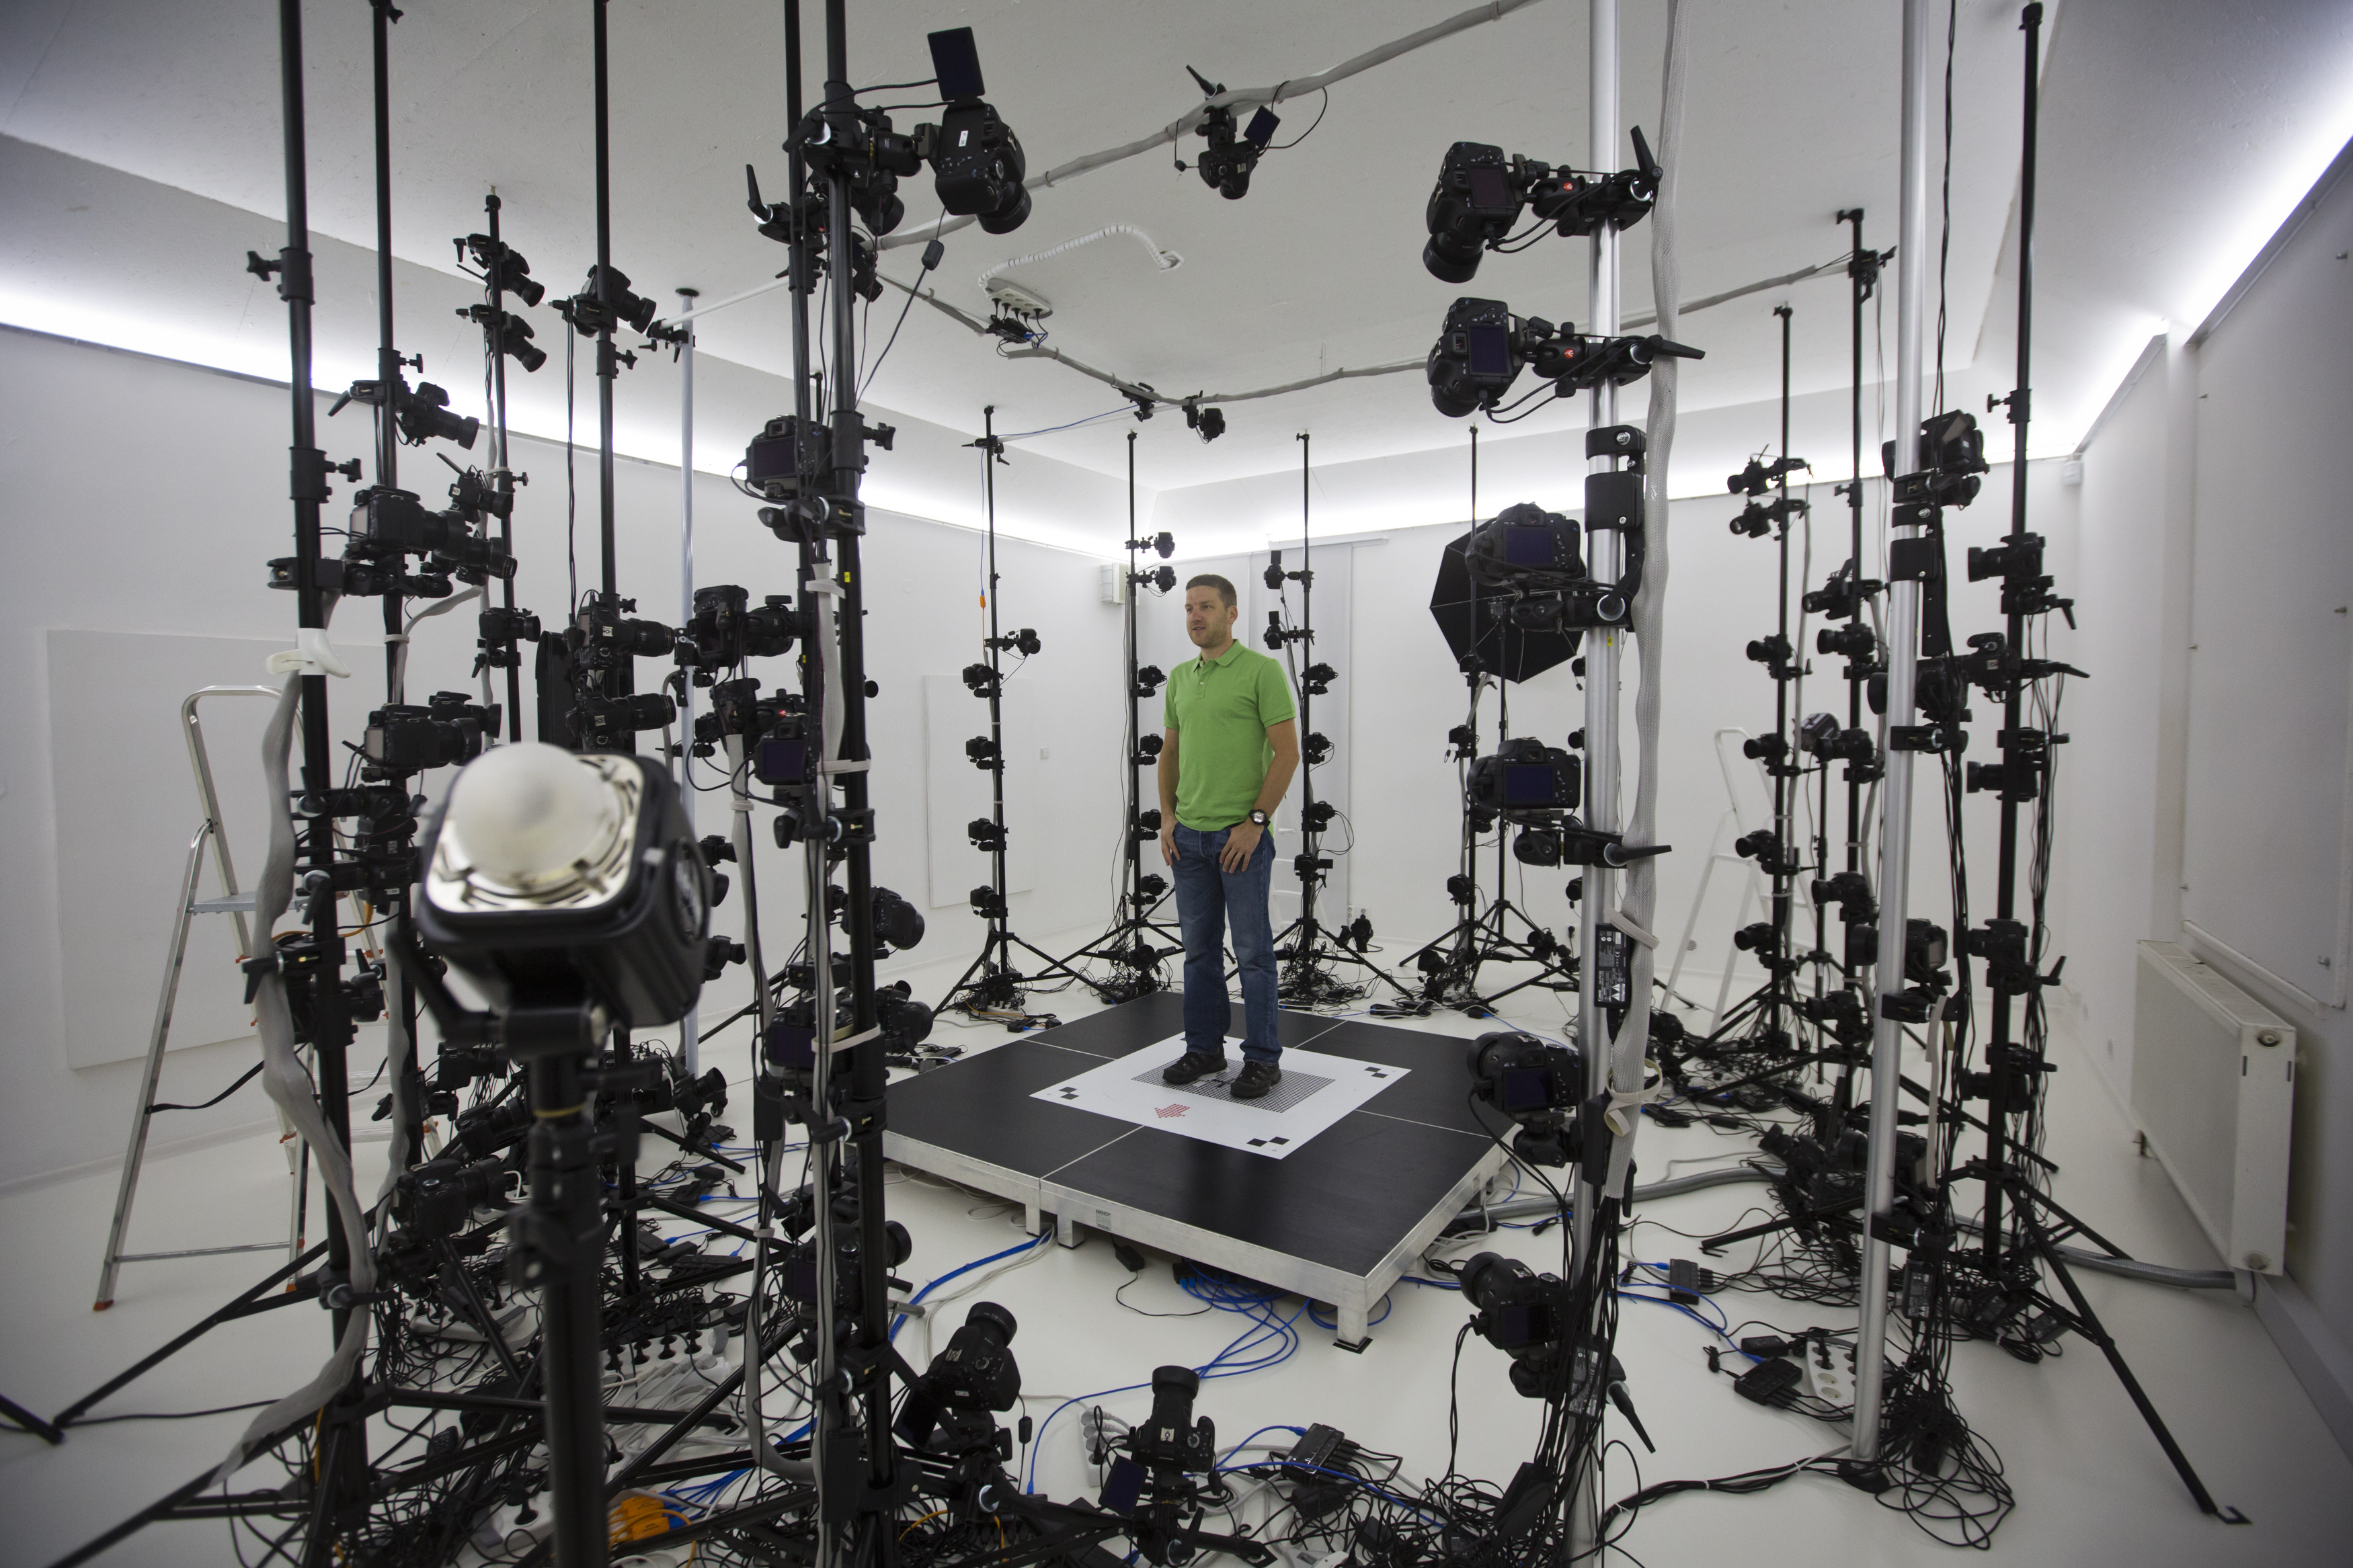 Martin Benes from 3D gang company demonstrates one of the stages of 3D scanning on August 26, 2014 in Prague, Czech Republic. The 3D scanner is the largest in continental Europe, with 115 sensors, and is designed to scan objects, people and animals.